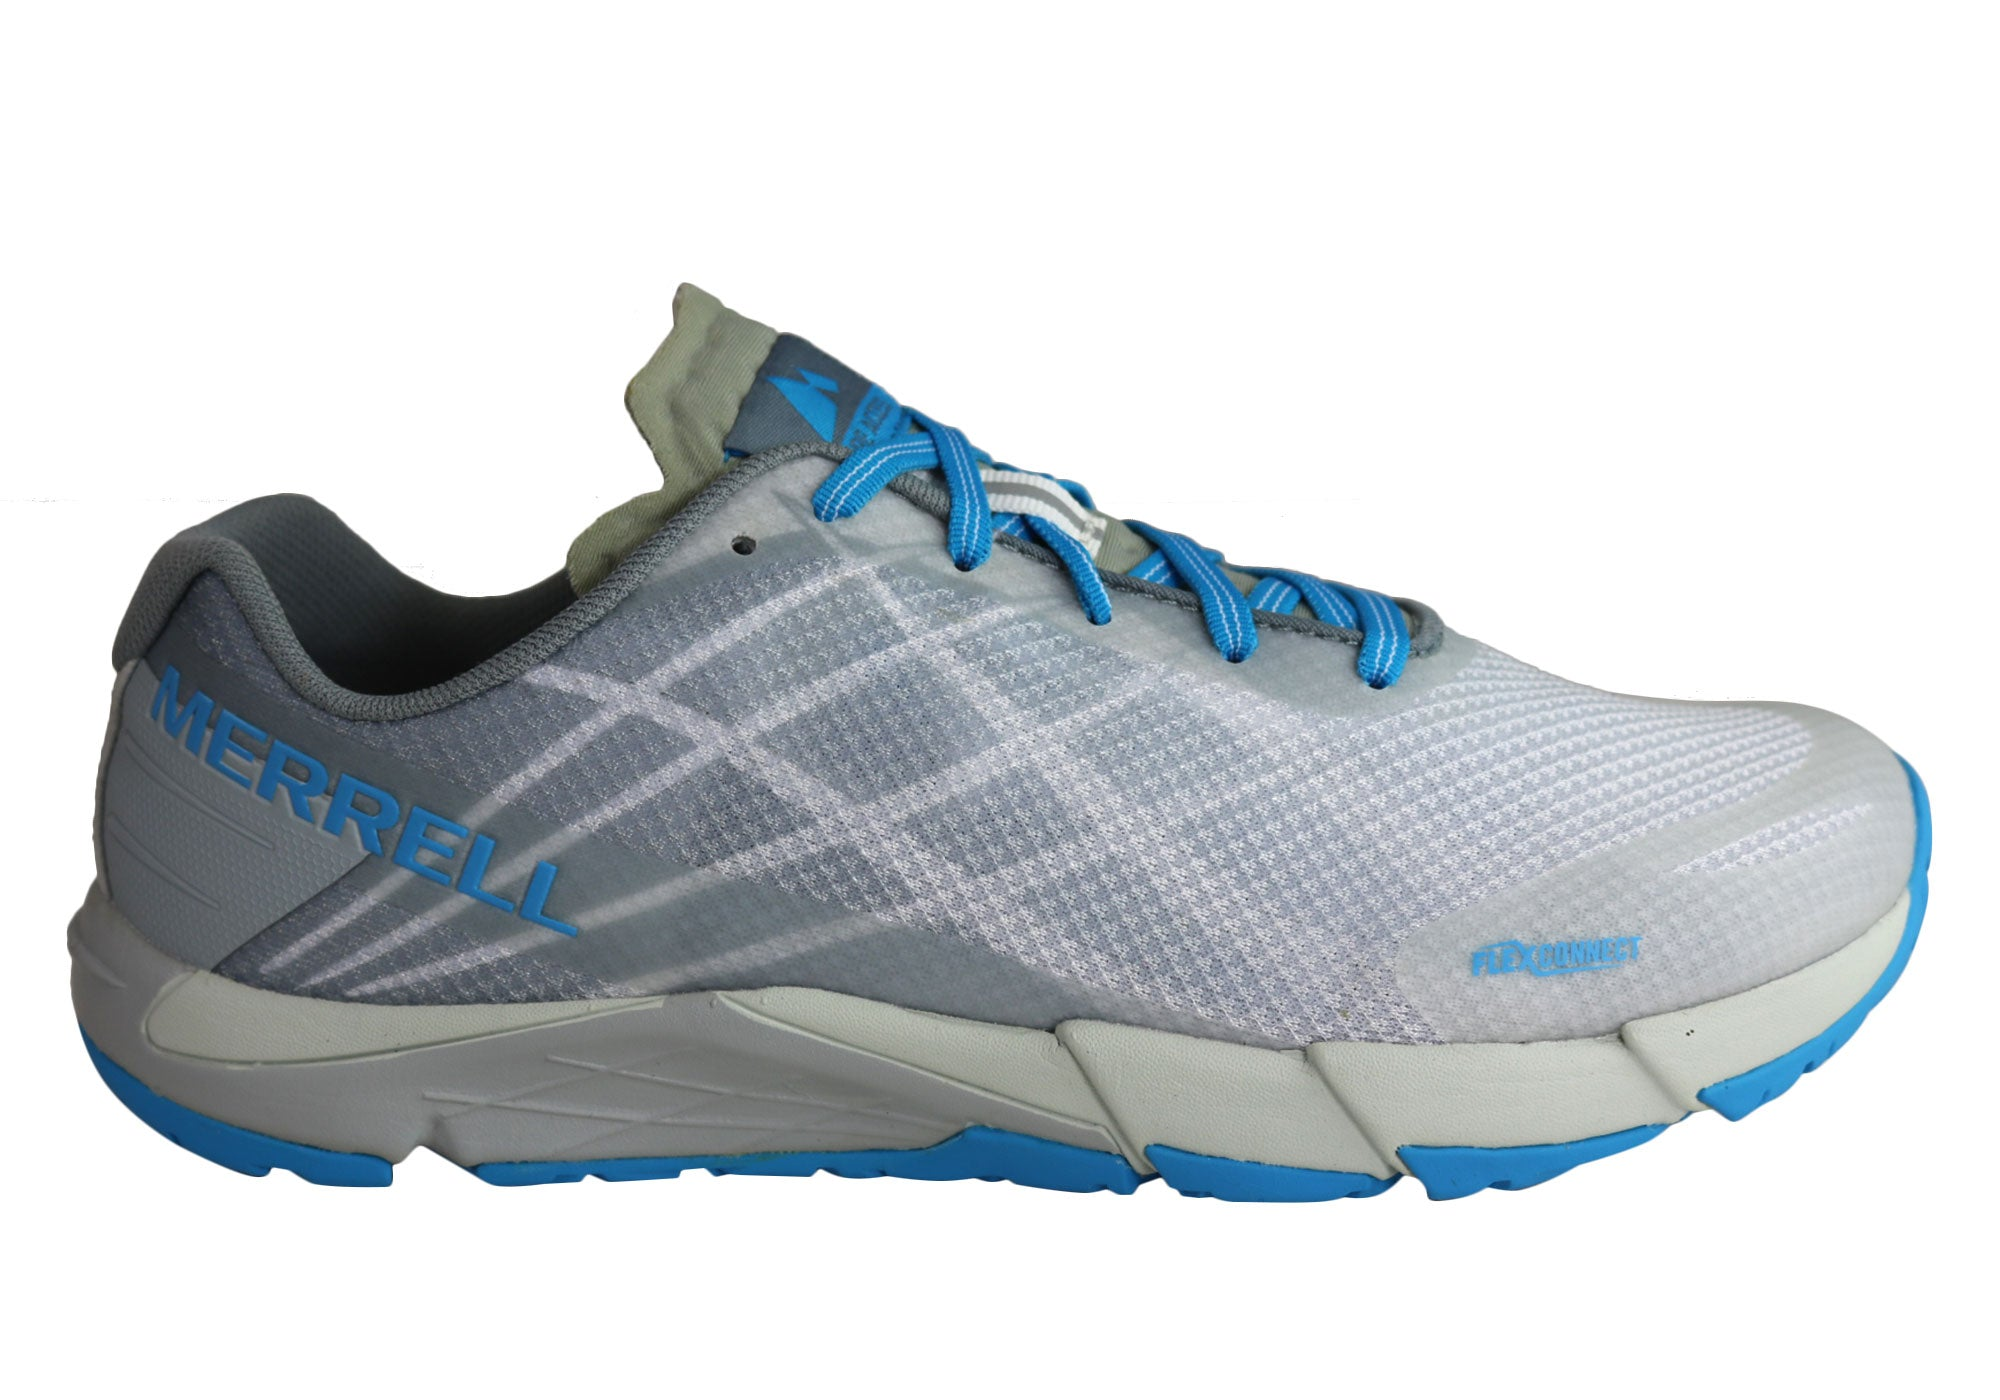 6ab25a0d449f Home Merrell Womens Bare Access Flex Comfortable Athletic Shoes. Ice ·  Aruba Blue ...